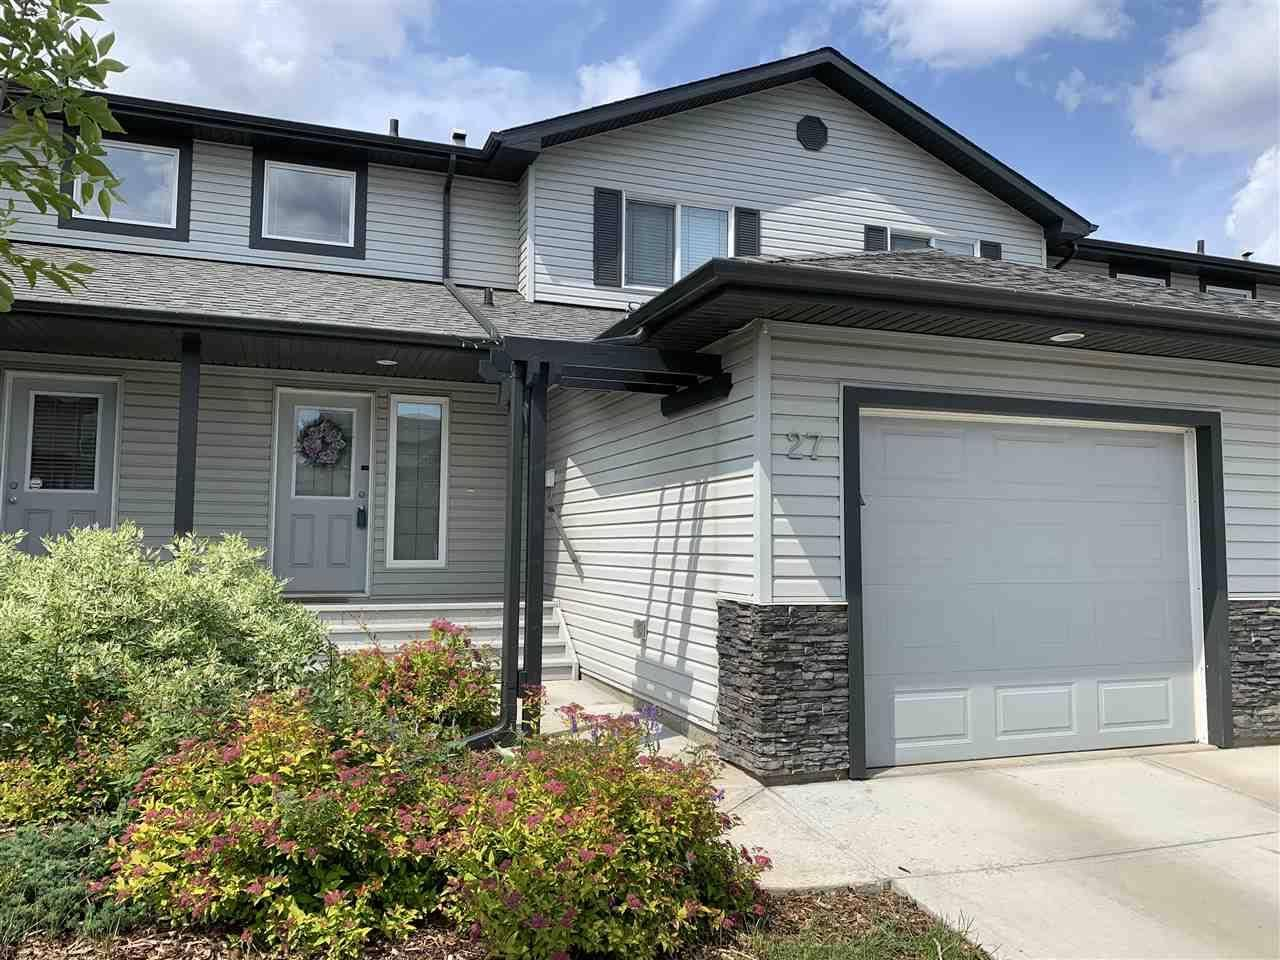 Townhouse for sale at 13838 166 Ave Nw Unit 27 Edmonton Alberta - MLS: E4164439